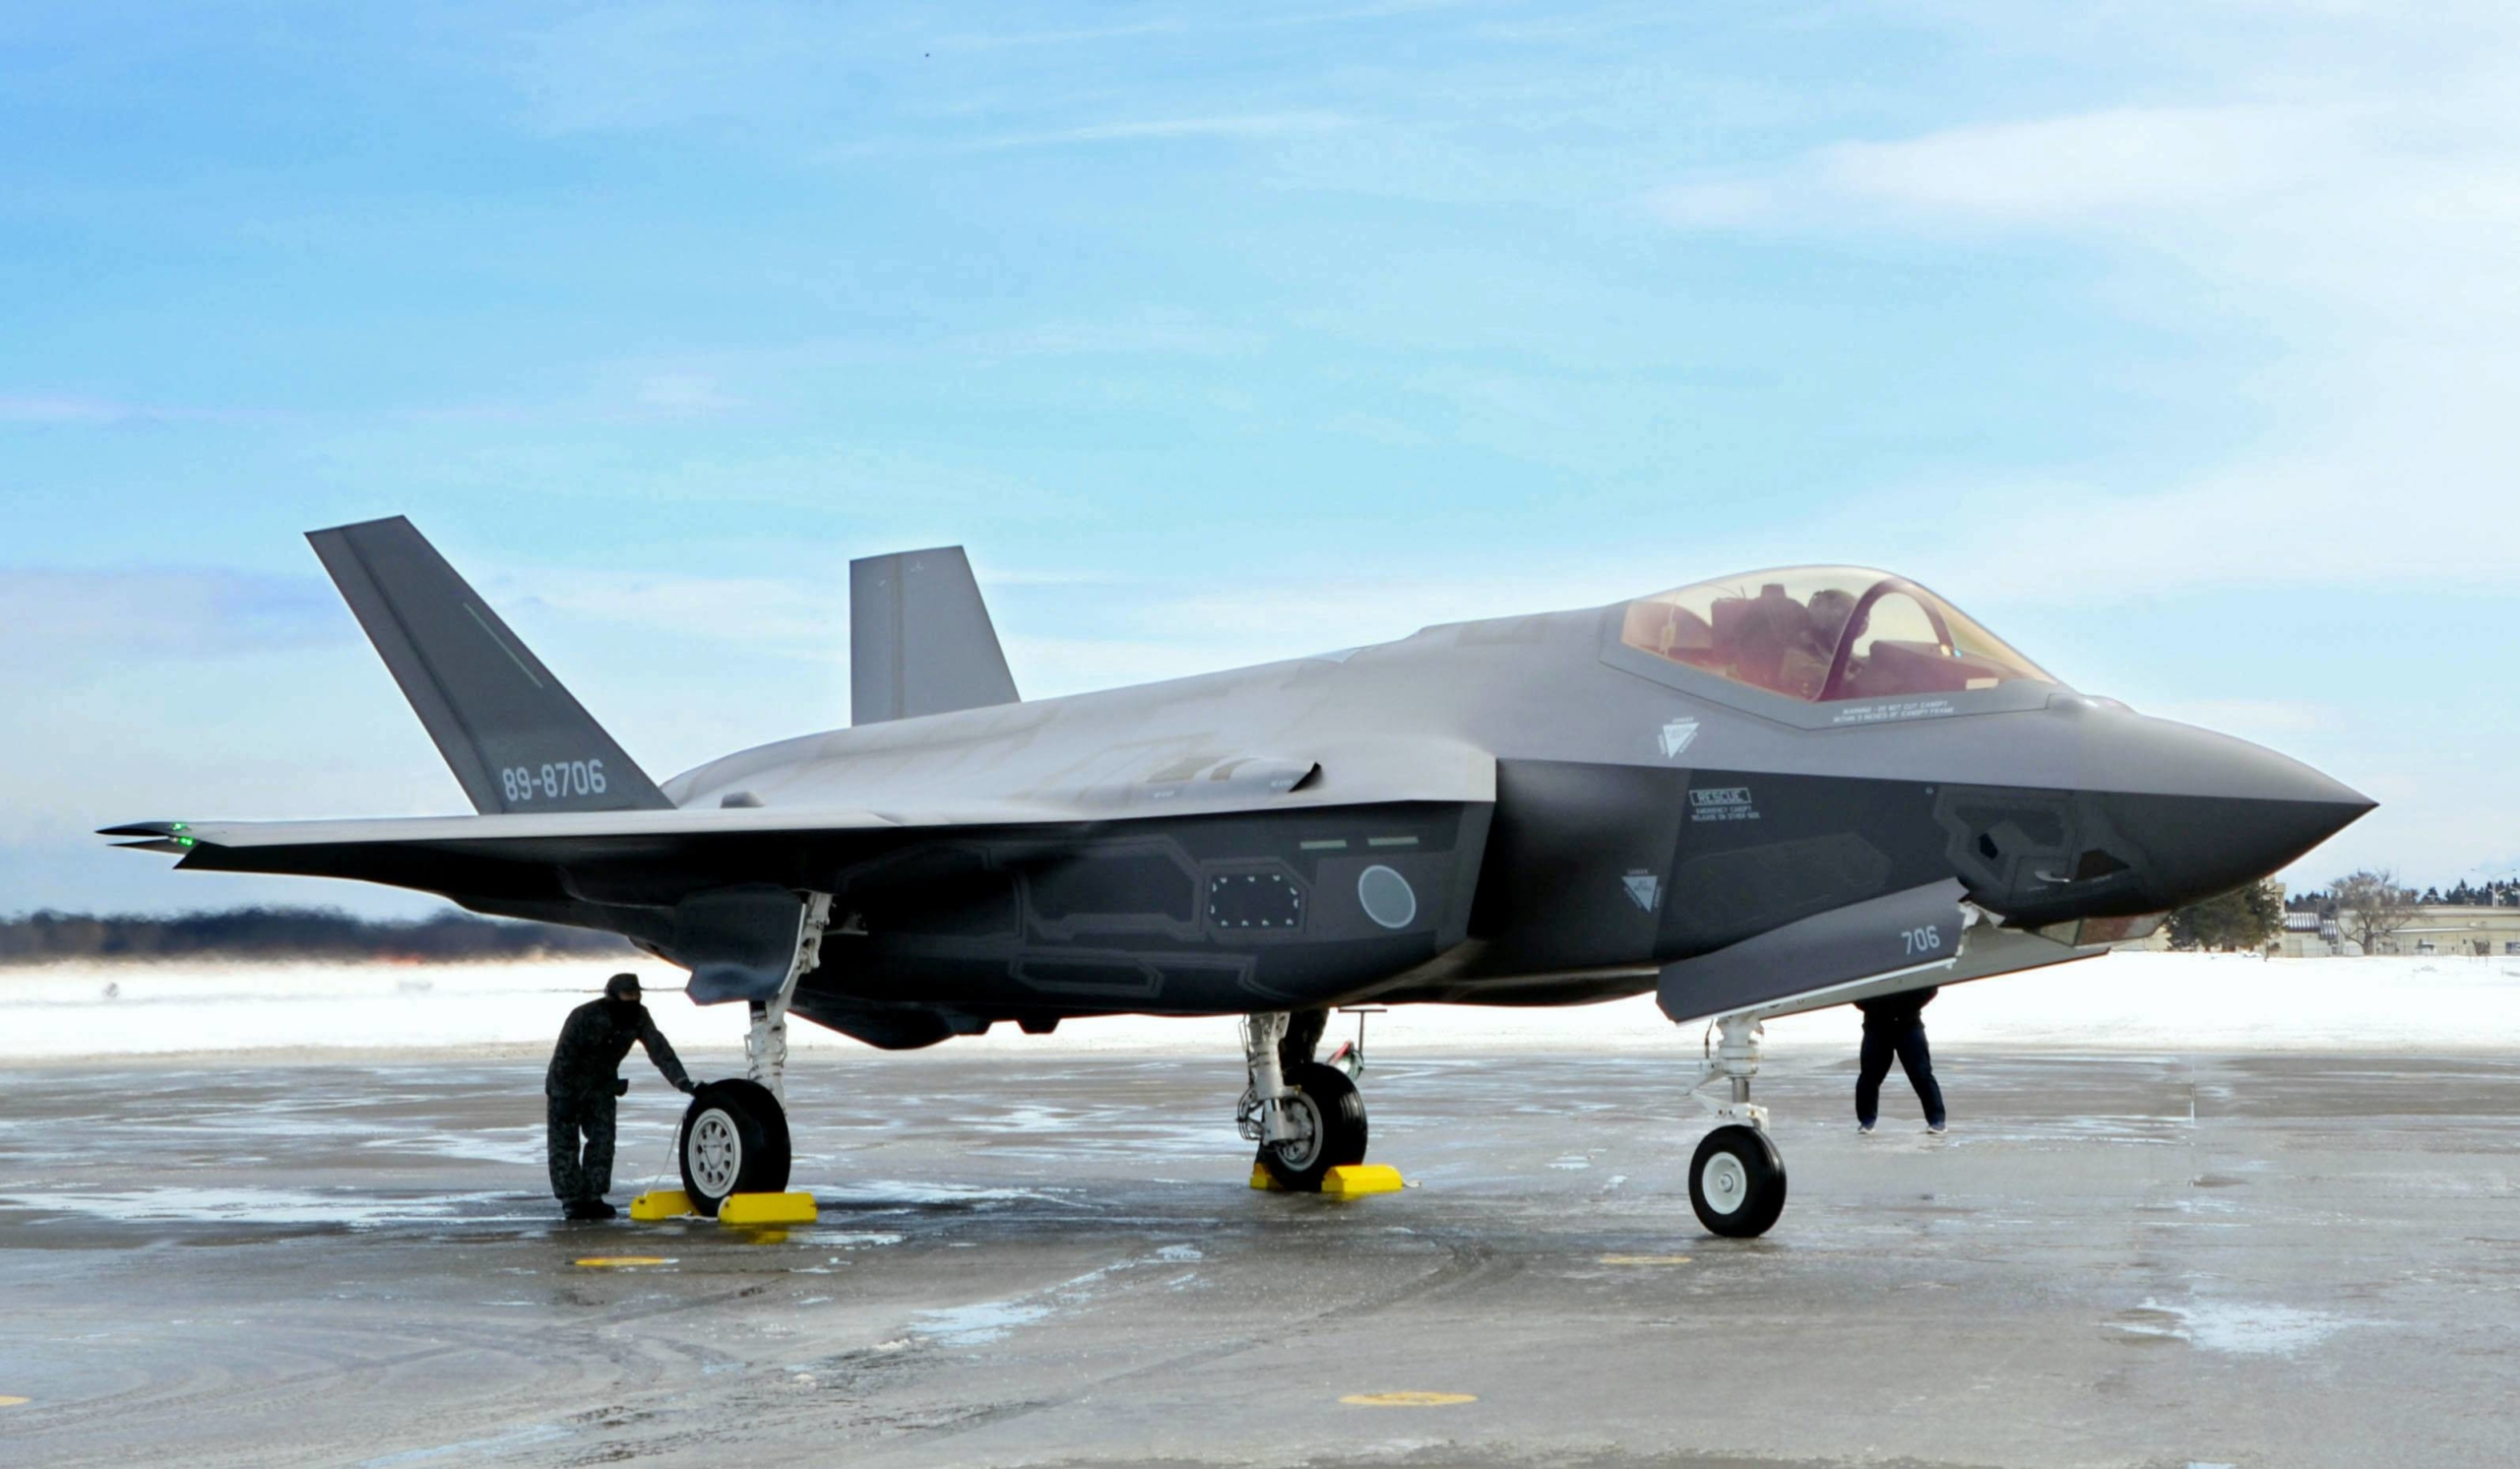 An F-35A stealth fighter jet at Misawa Air Base in Aomori Prefecture in January 2018 | KYODO